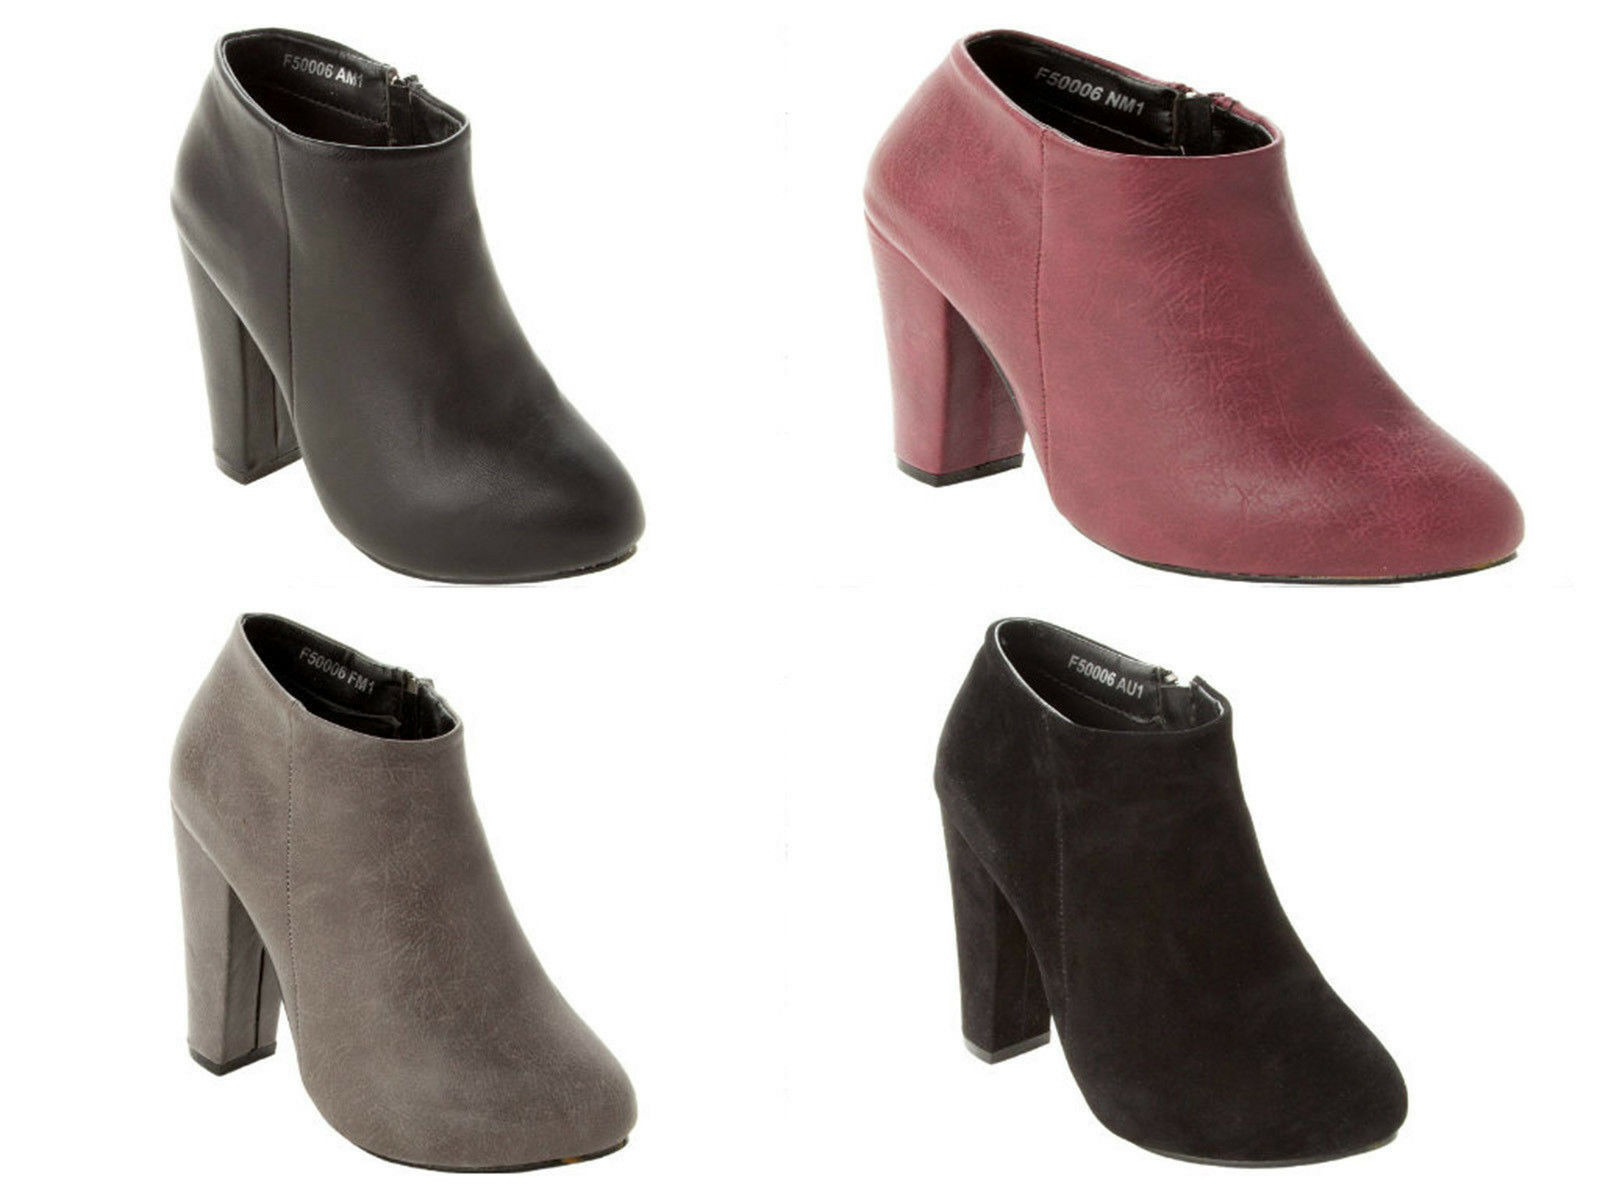 WOMENS FASHION BLOCK HEEL SIDE ZIP ANKLE BOOTS SHOES BOOTIES LADIES UK SIZE 3-8